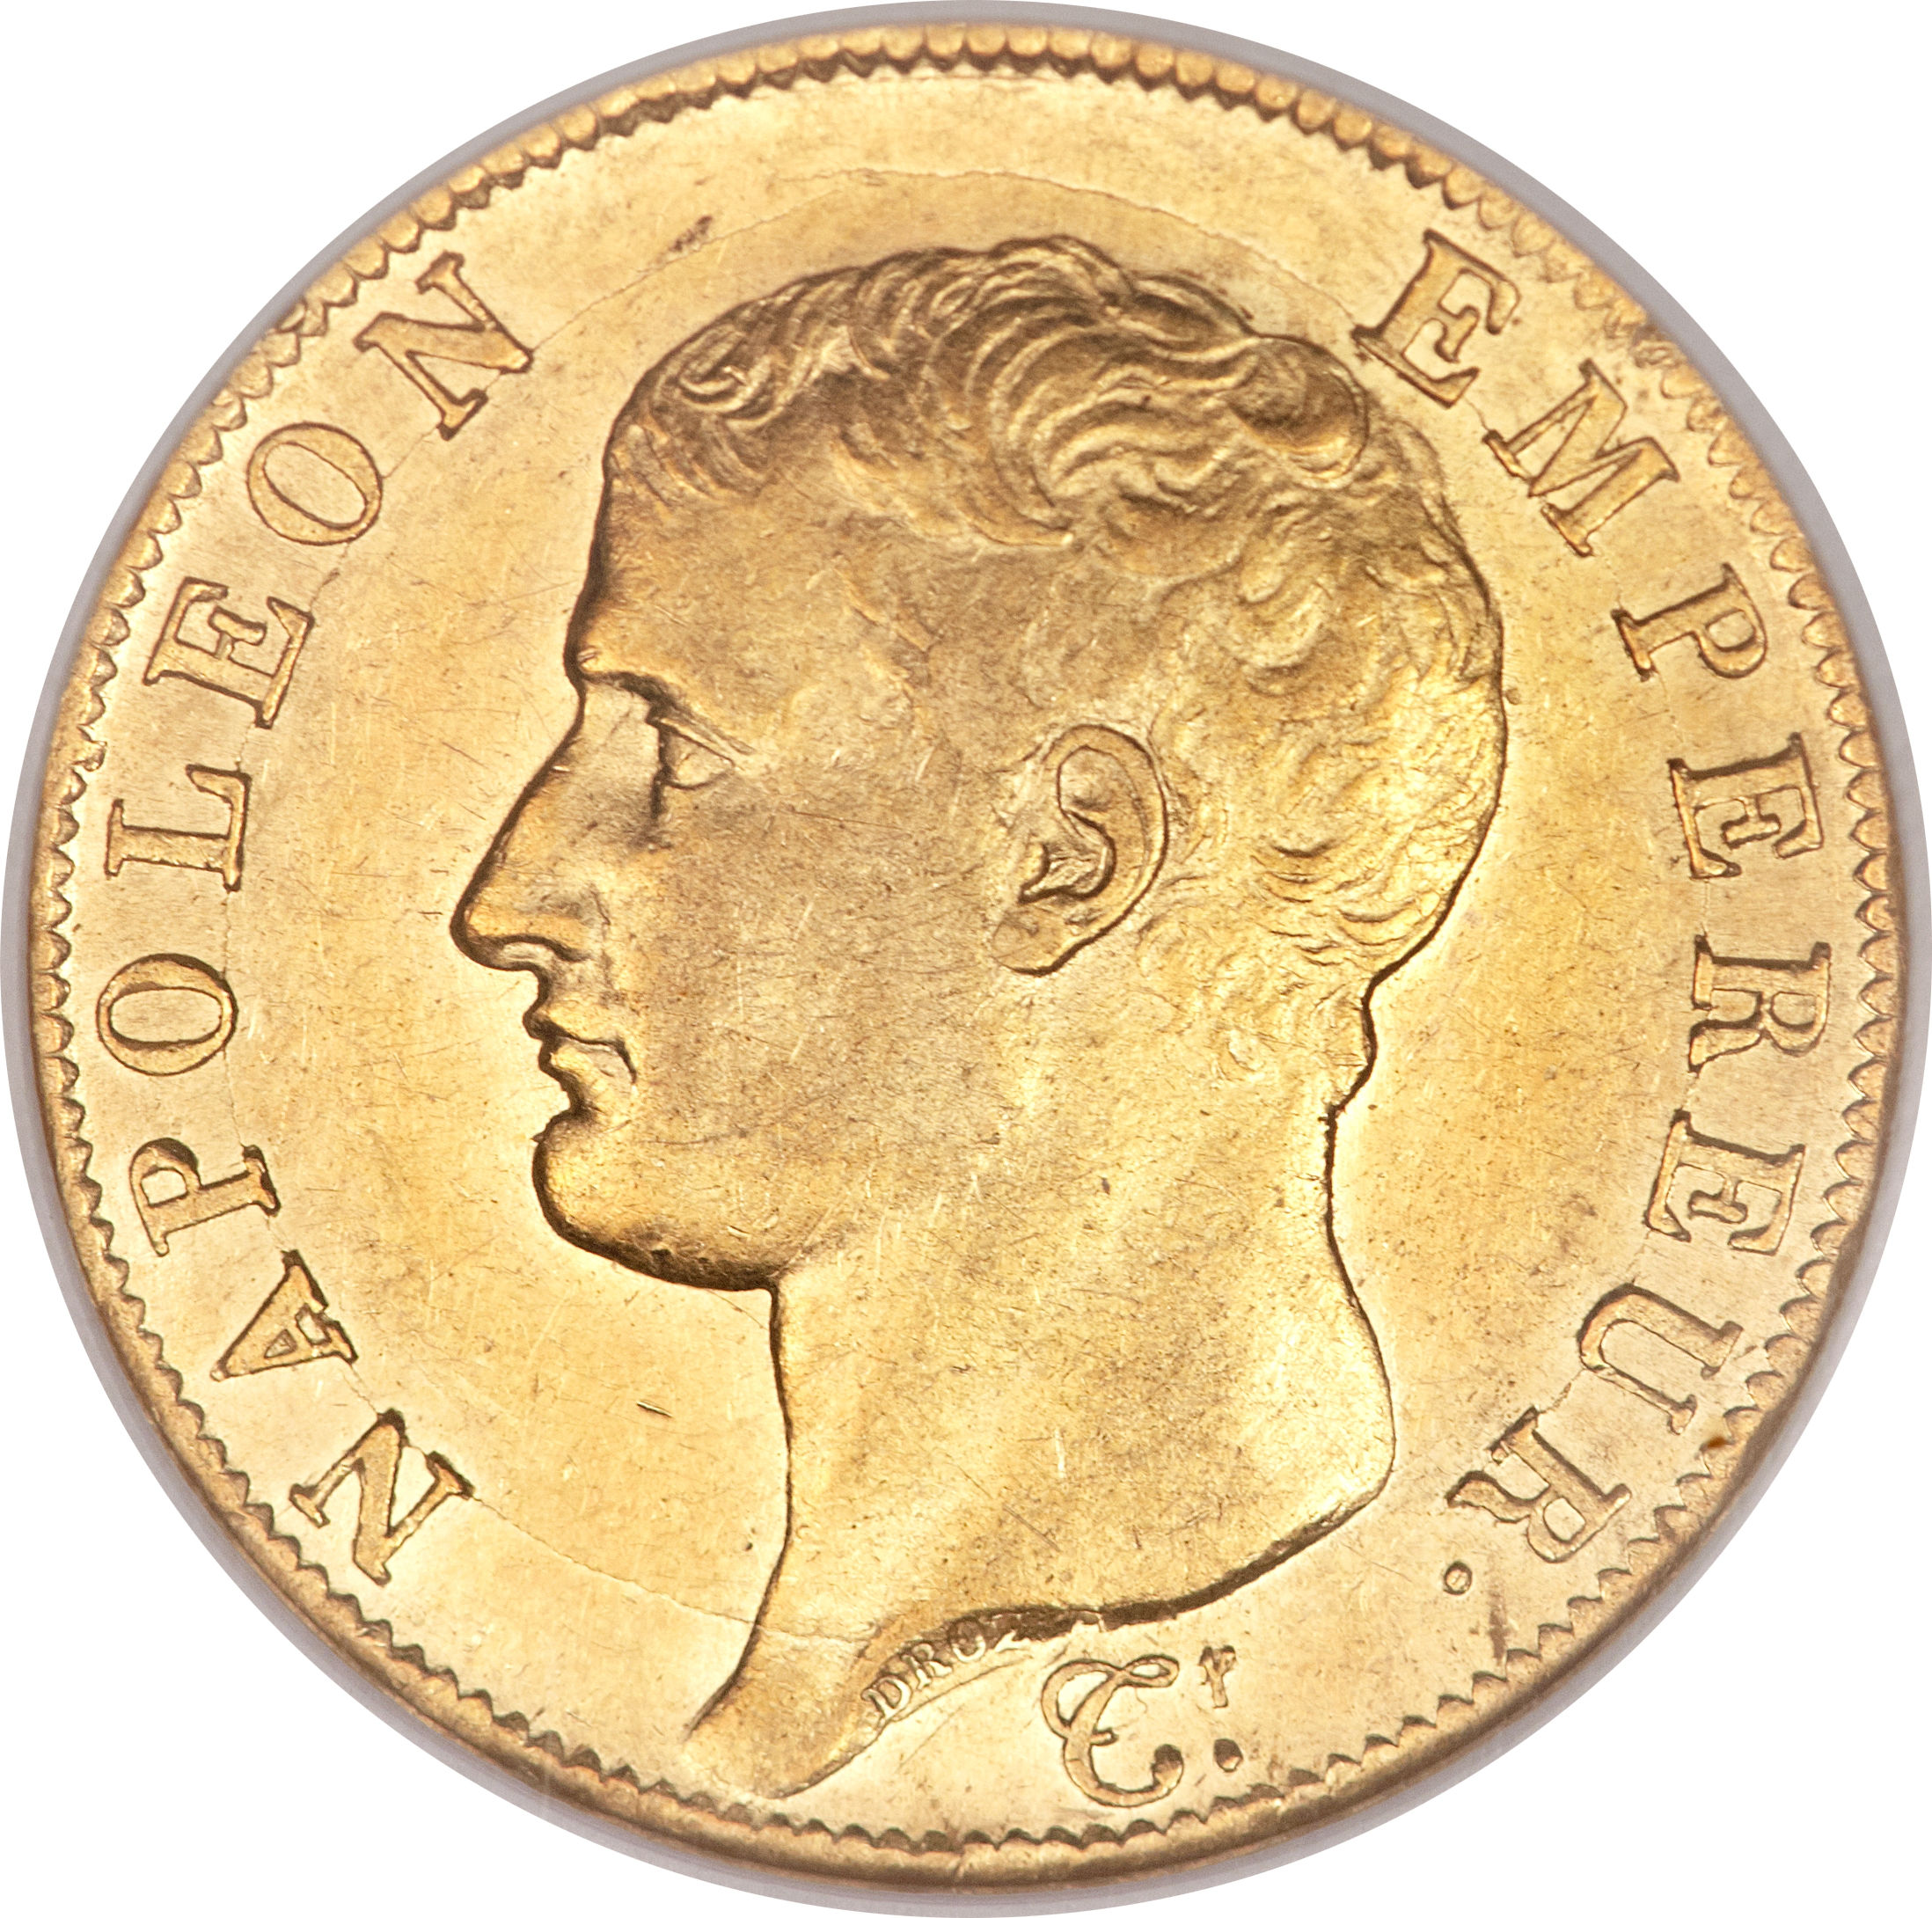 Select Numismatic Tributes of Napoleon